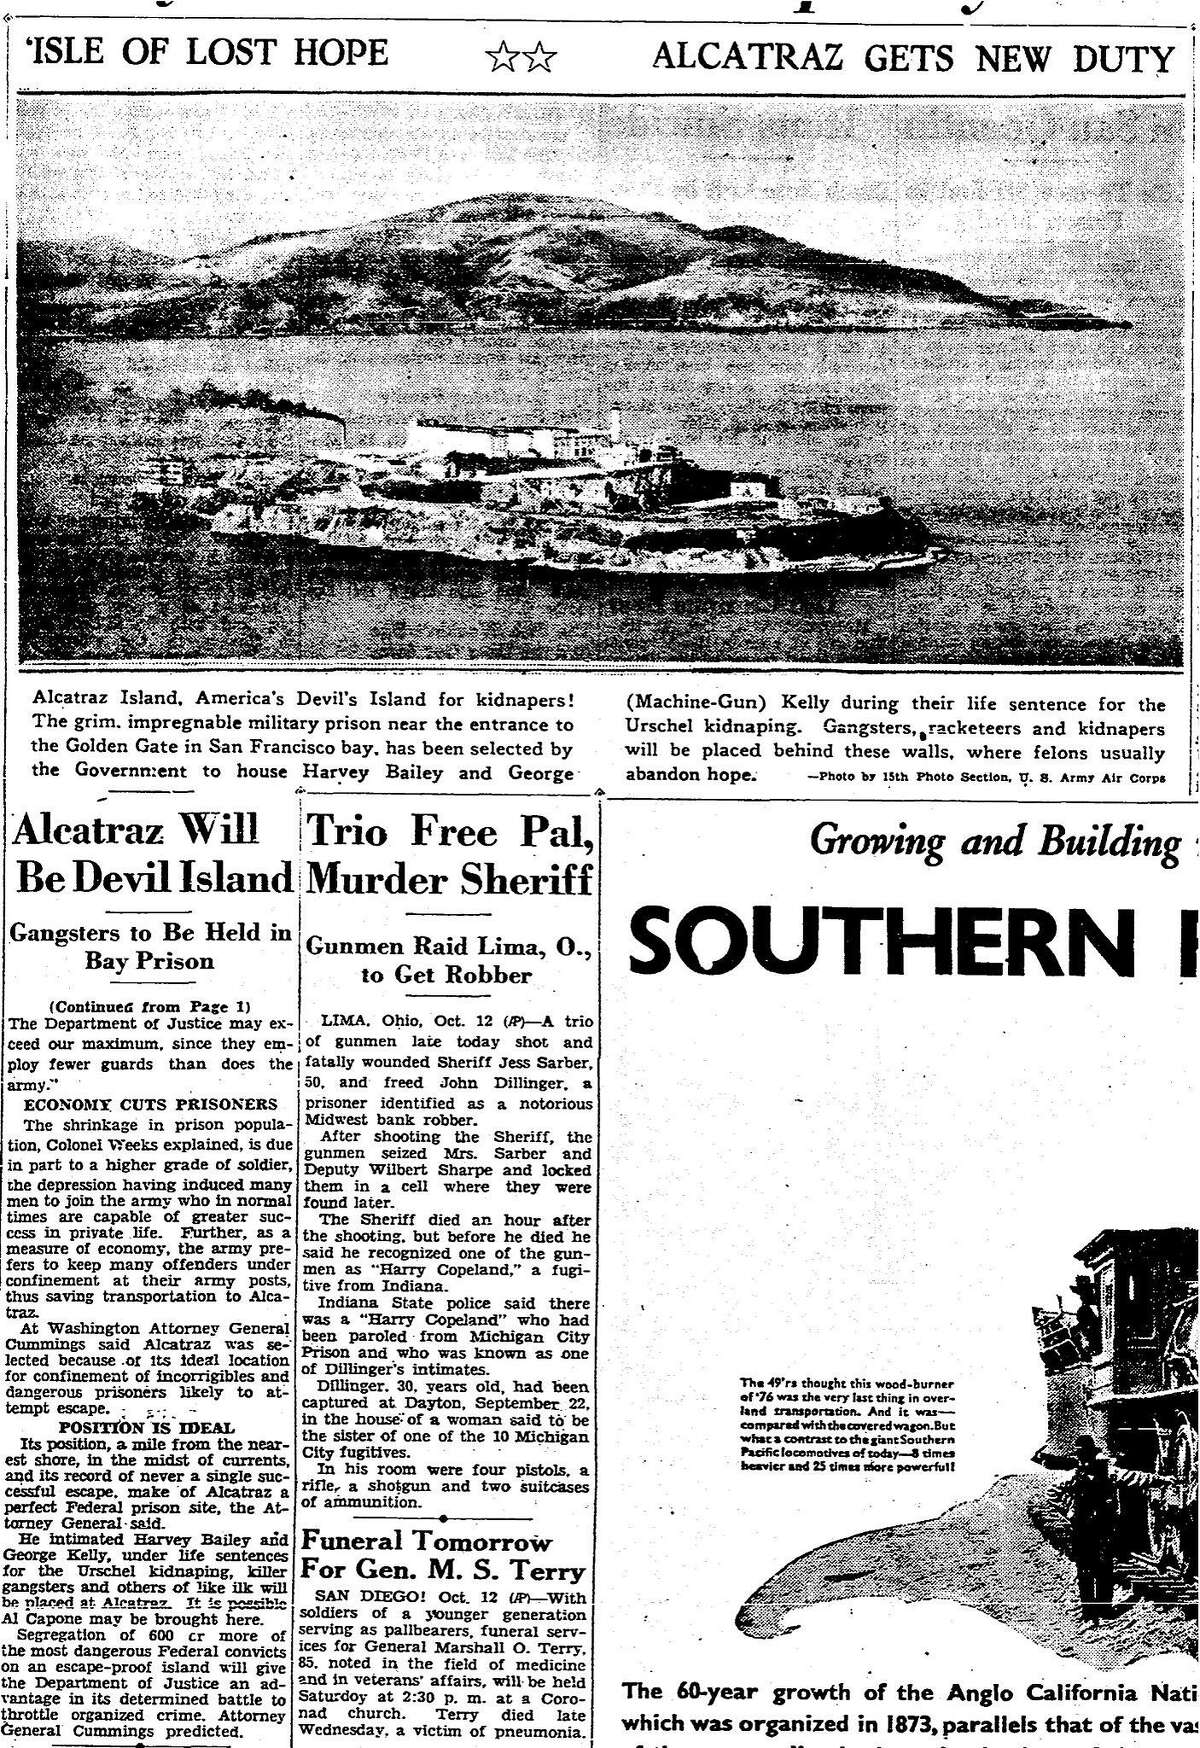 On October 13, 1933 the Chronicle reported on the announcement that the former U.S. Army disciplinary barricades on Alcatraz island would be turned into a federal prison.